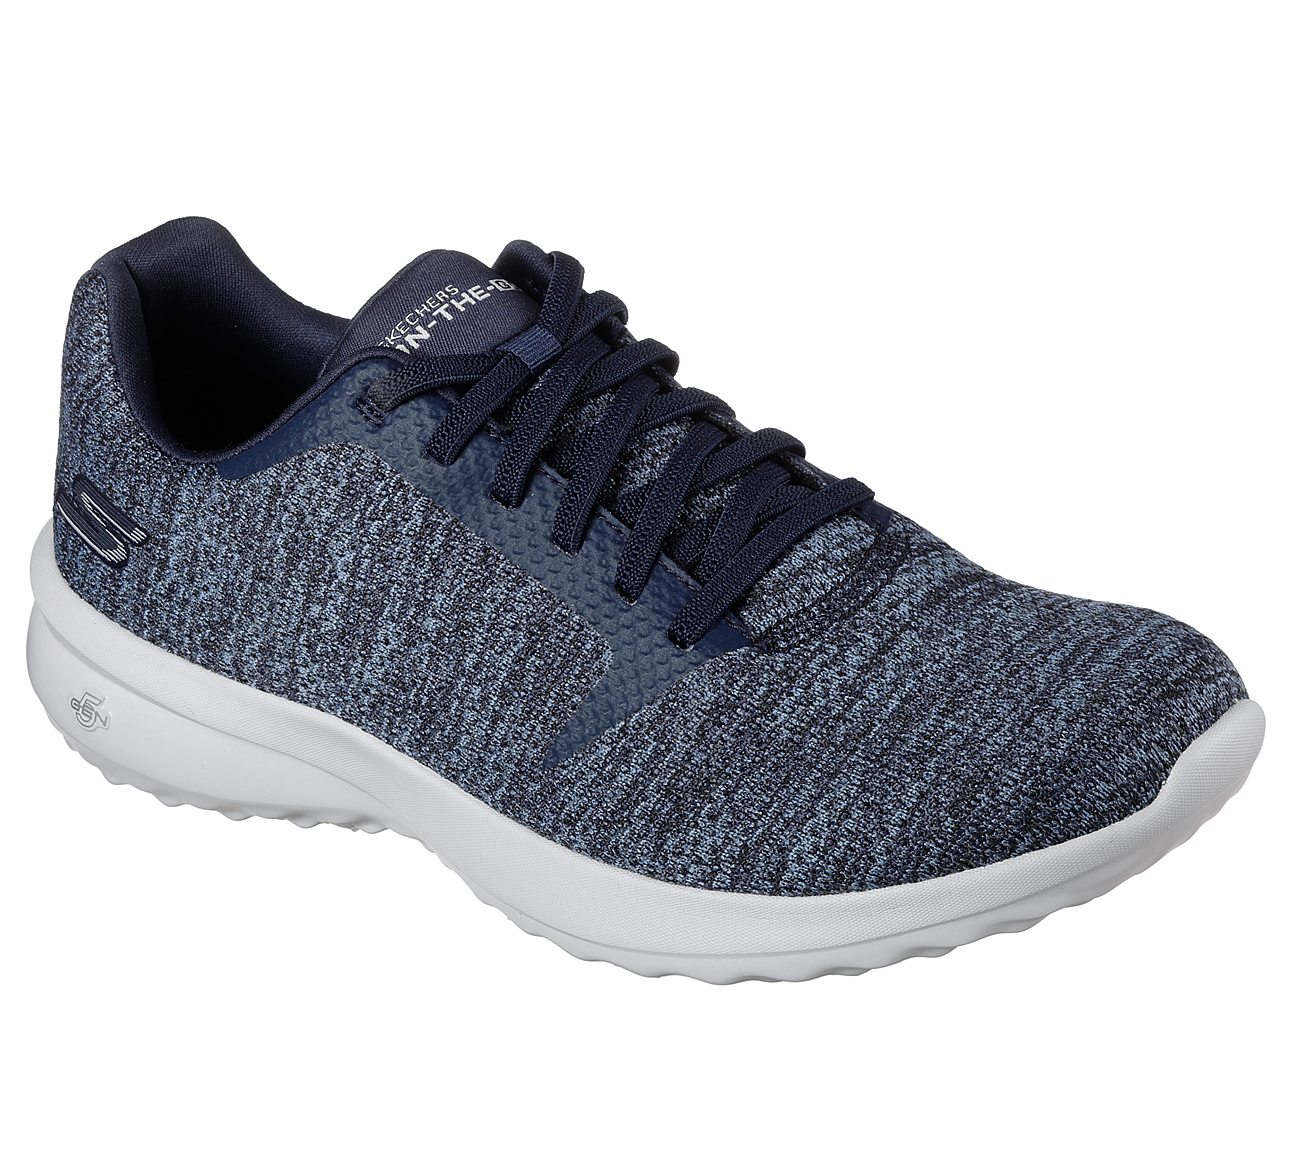 City 3.0 - Zeal Skechers Performance Shoes